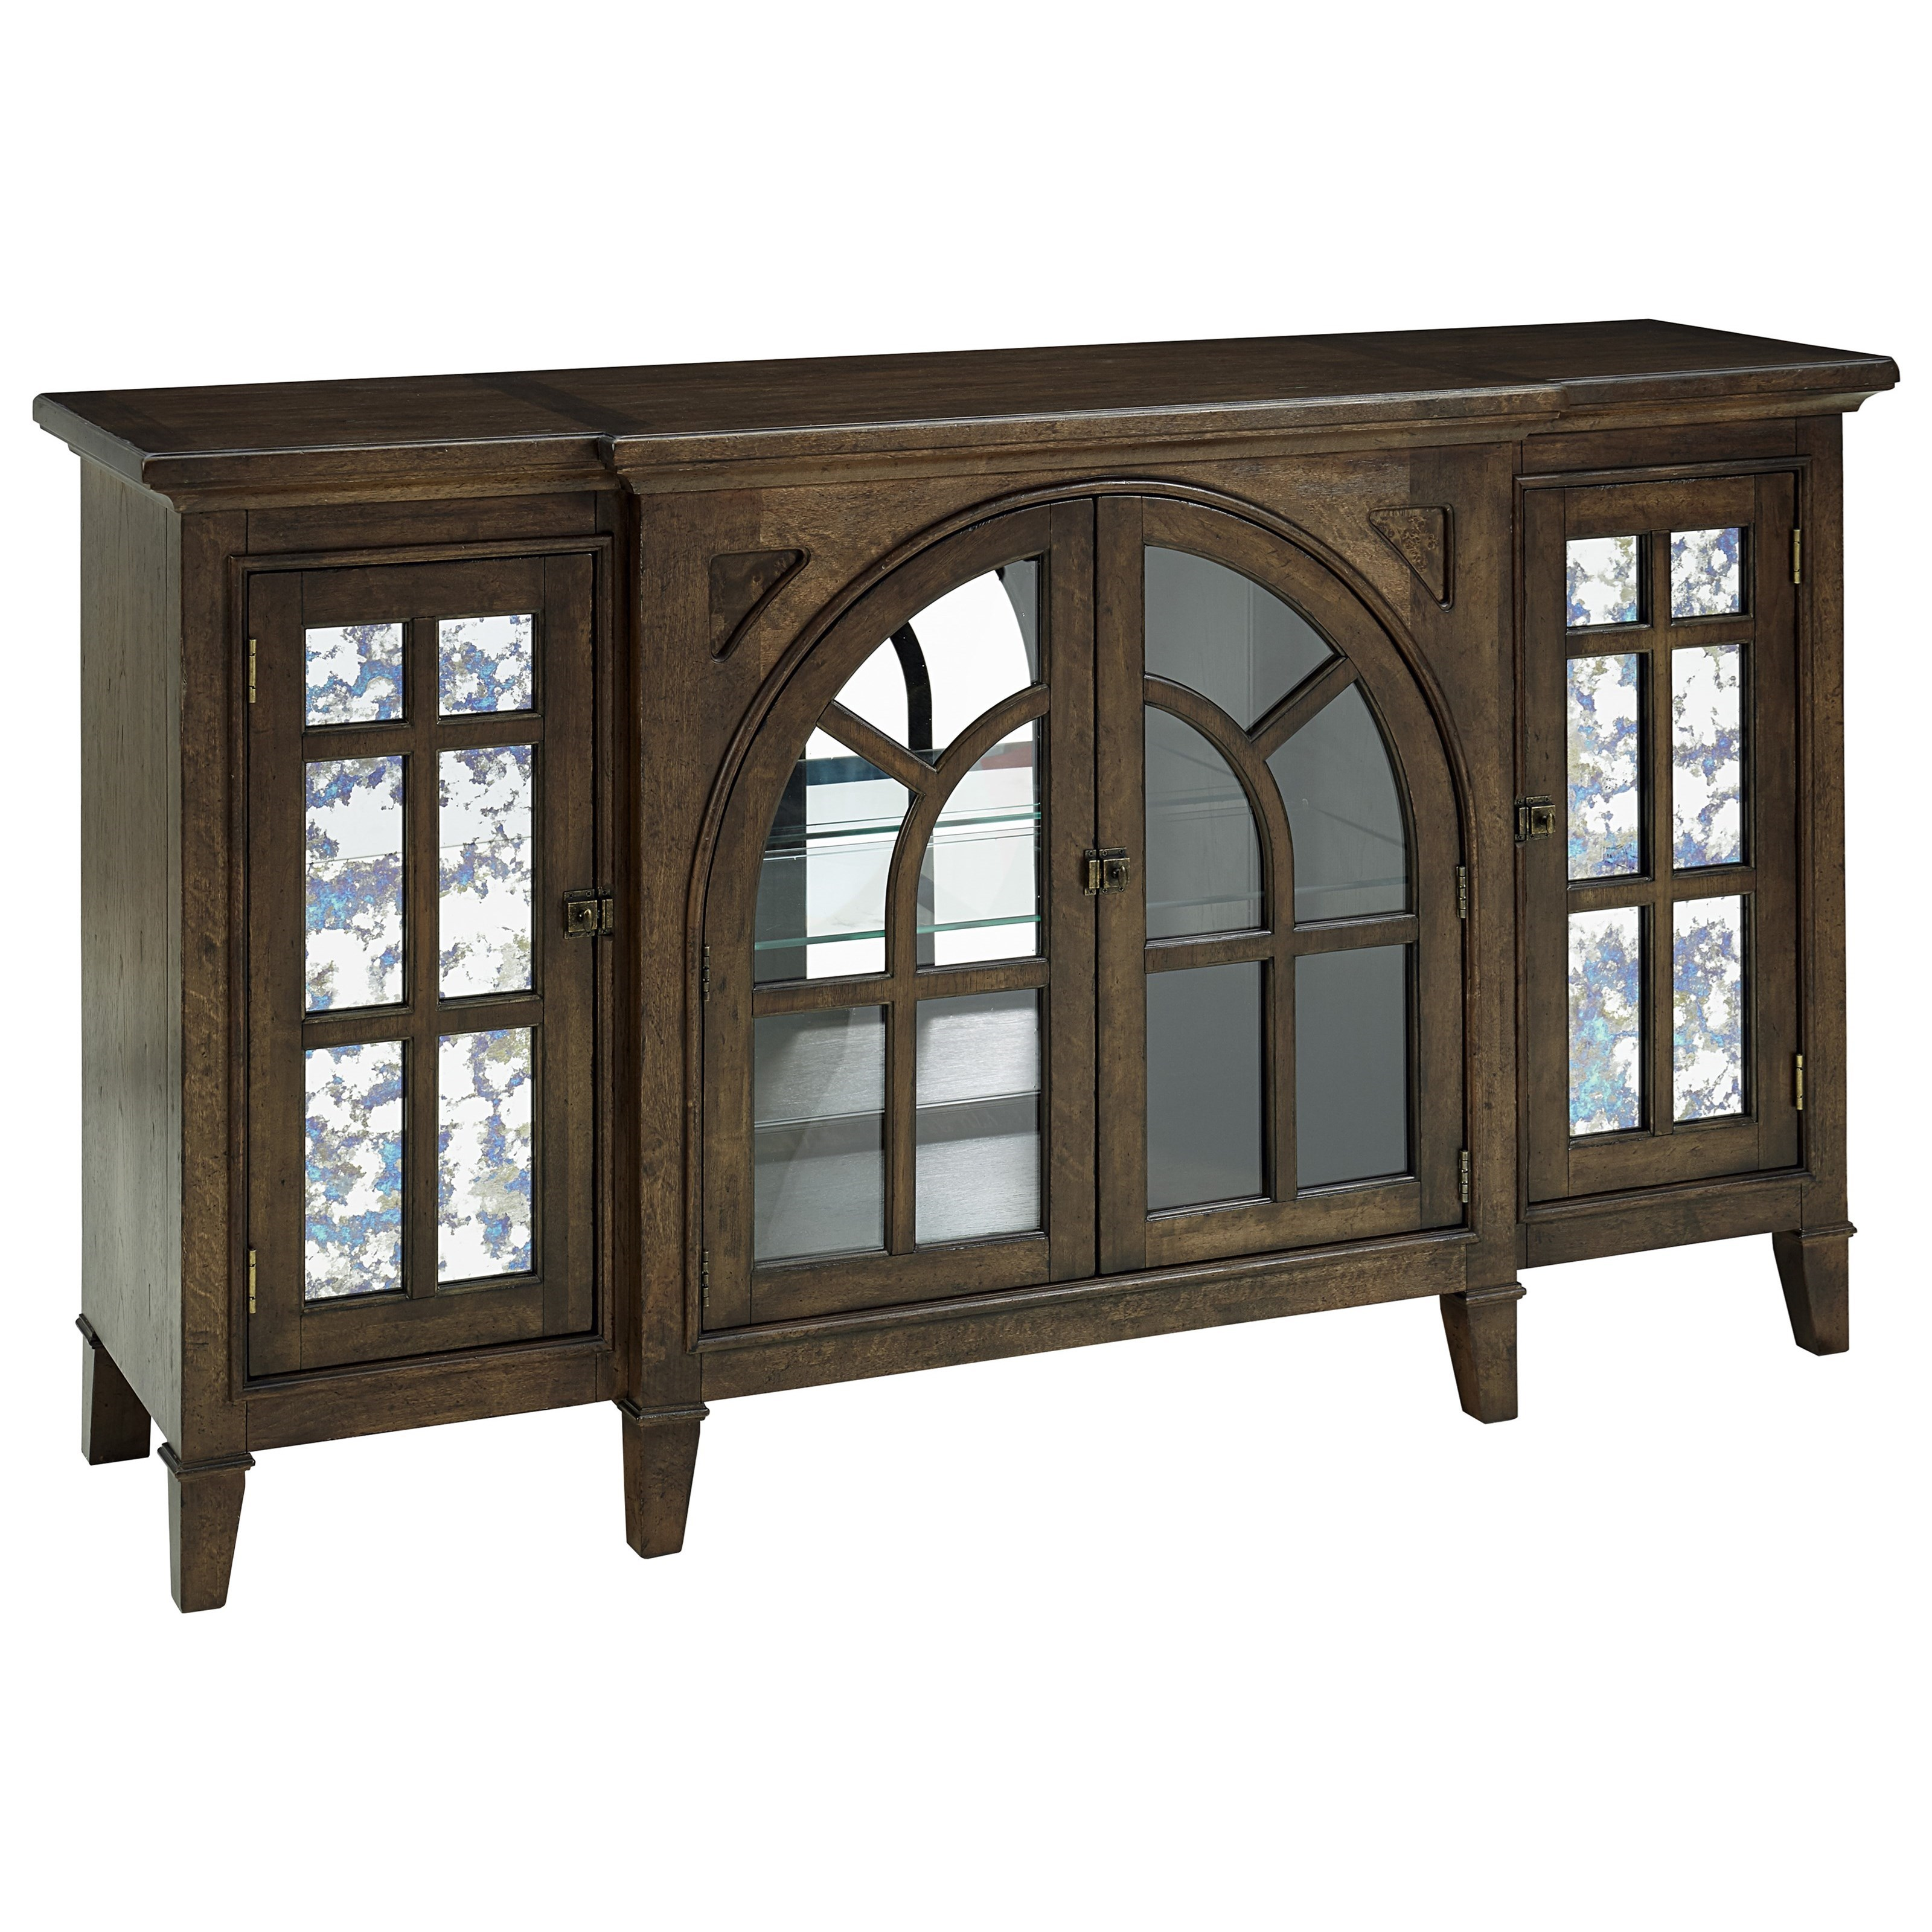 American Chapter Mercury Glass Buffet by A.R.T. Furniture Inc at Home Collections Furniture